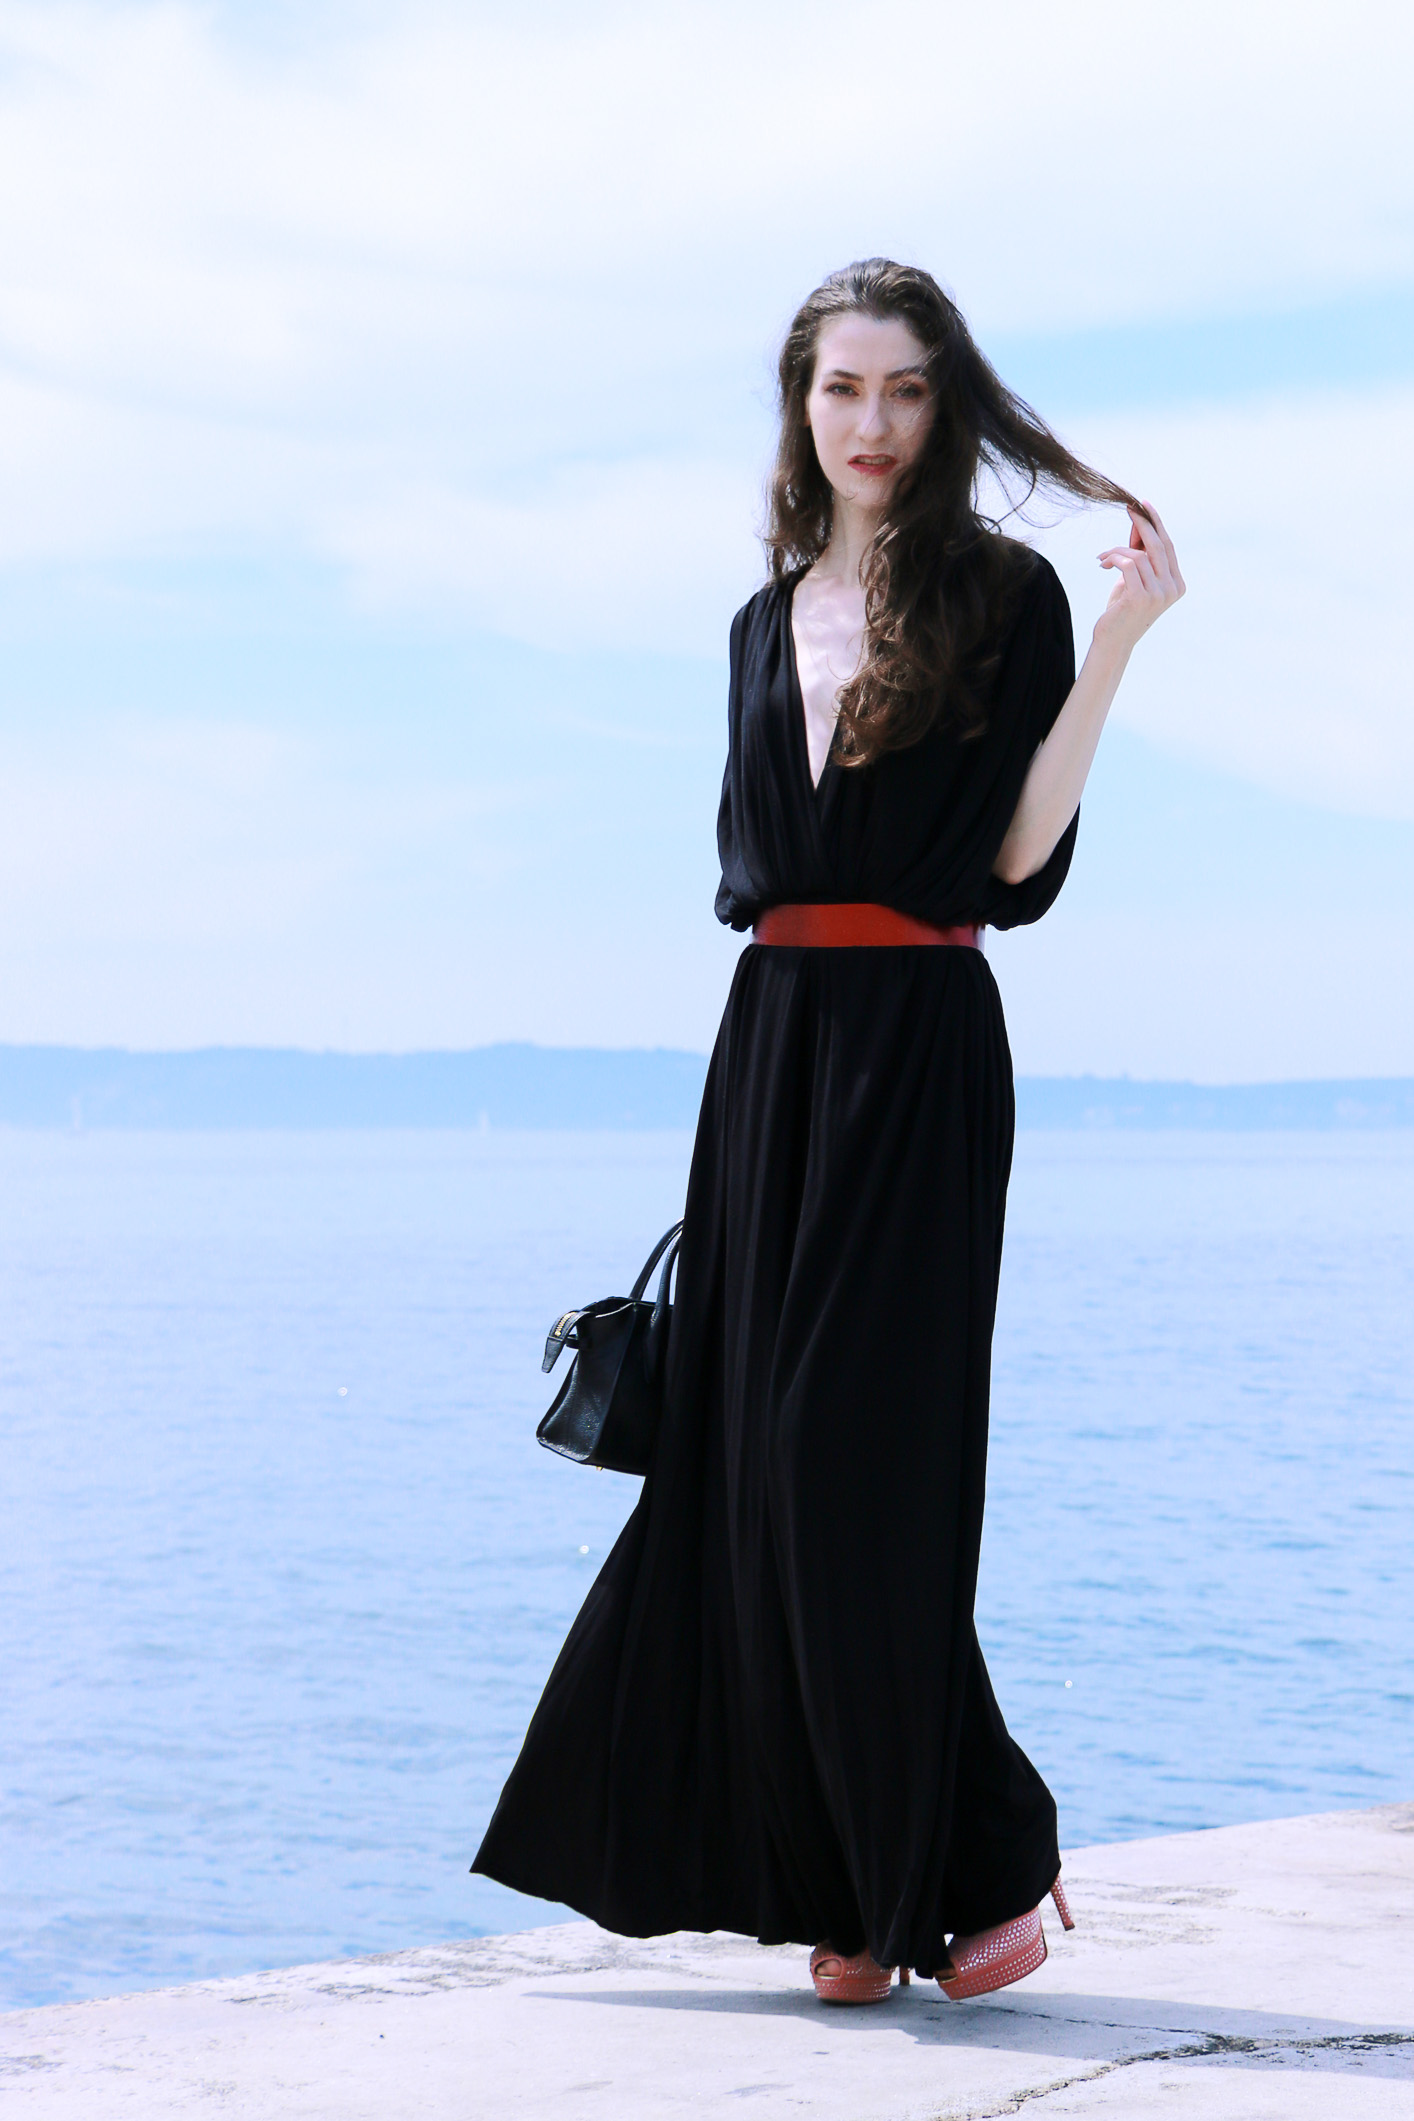 Fashion blogger Veronika Lipar of Brunette From Wall Street sharing how to dress up for a gala event this summer